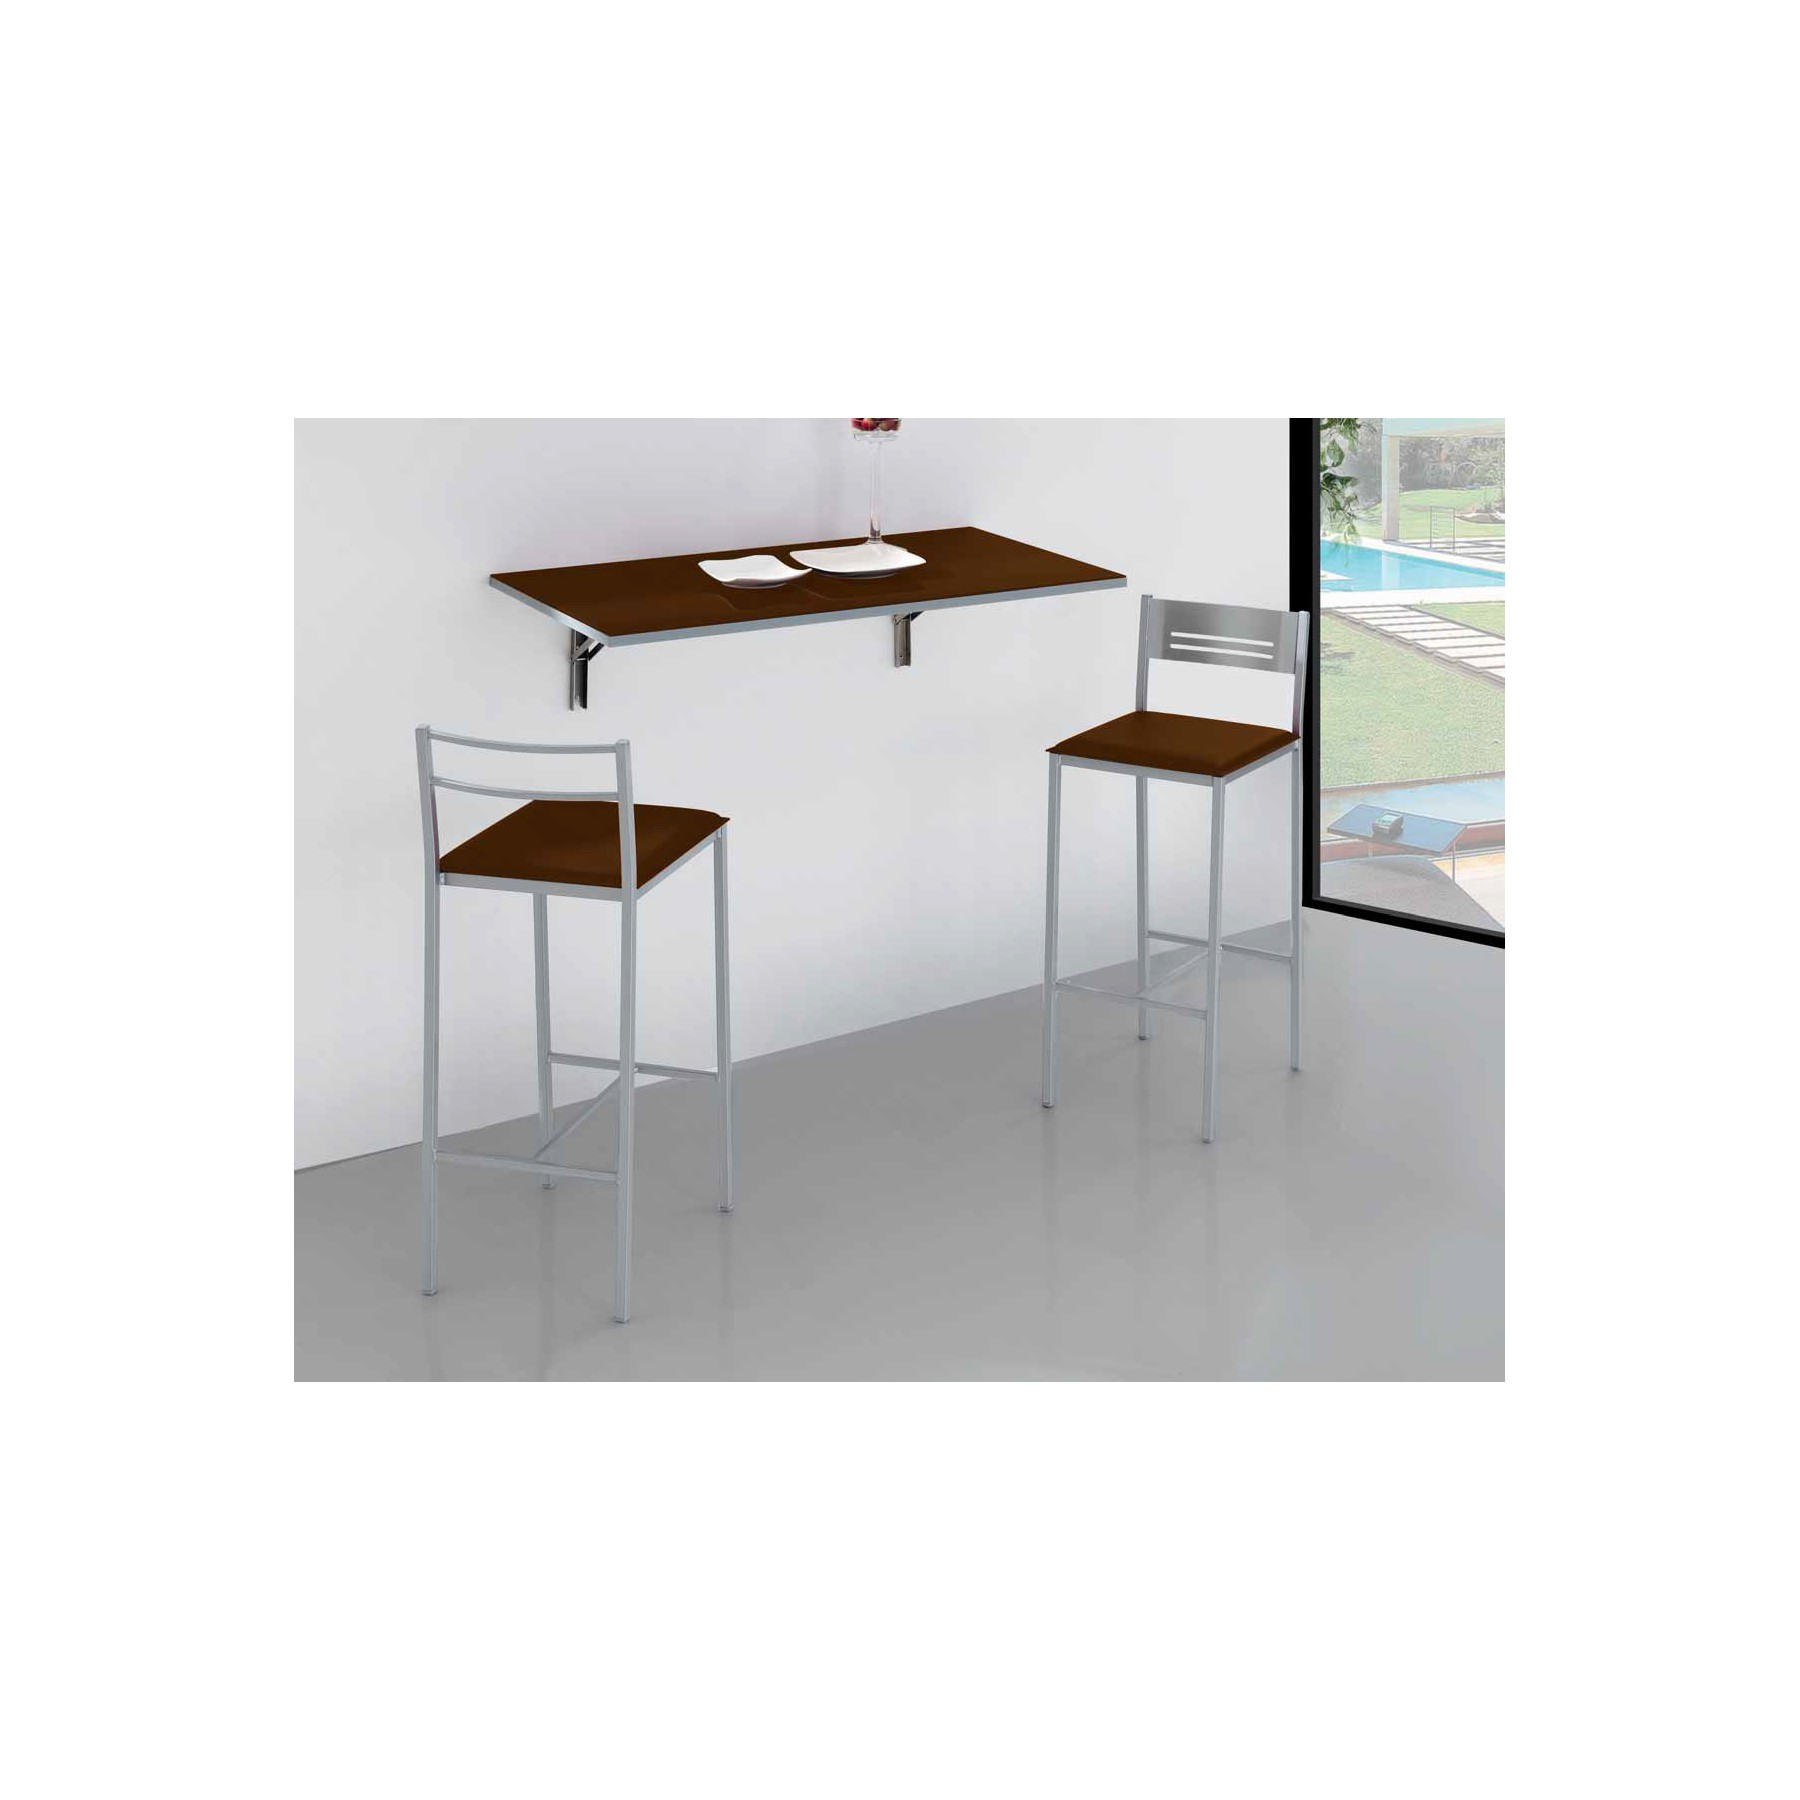 Mesa de cocina de pared plegable simple dkg for Mesas plegables para cocina